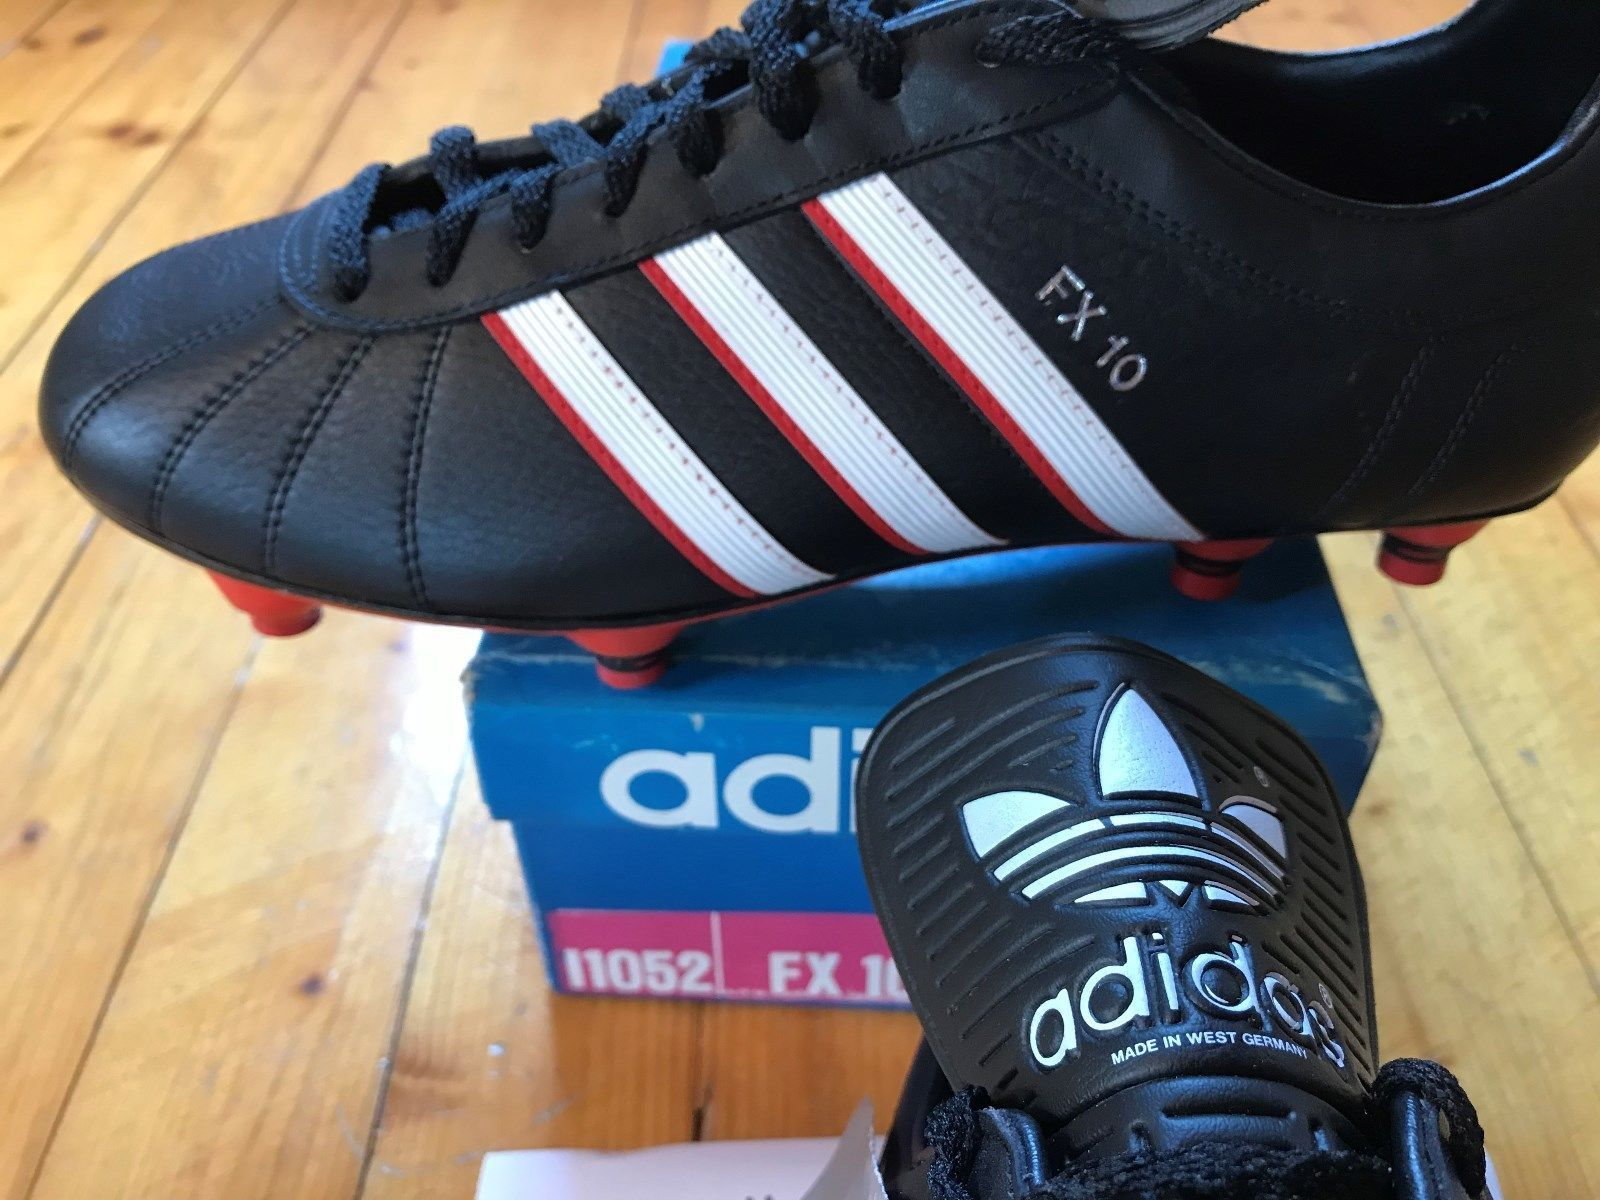 Vintage Adidas FX 10 soccer boots 9,5 WC 1986 Mexico Made